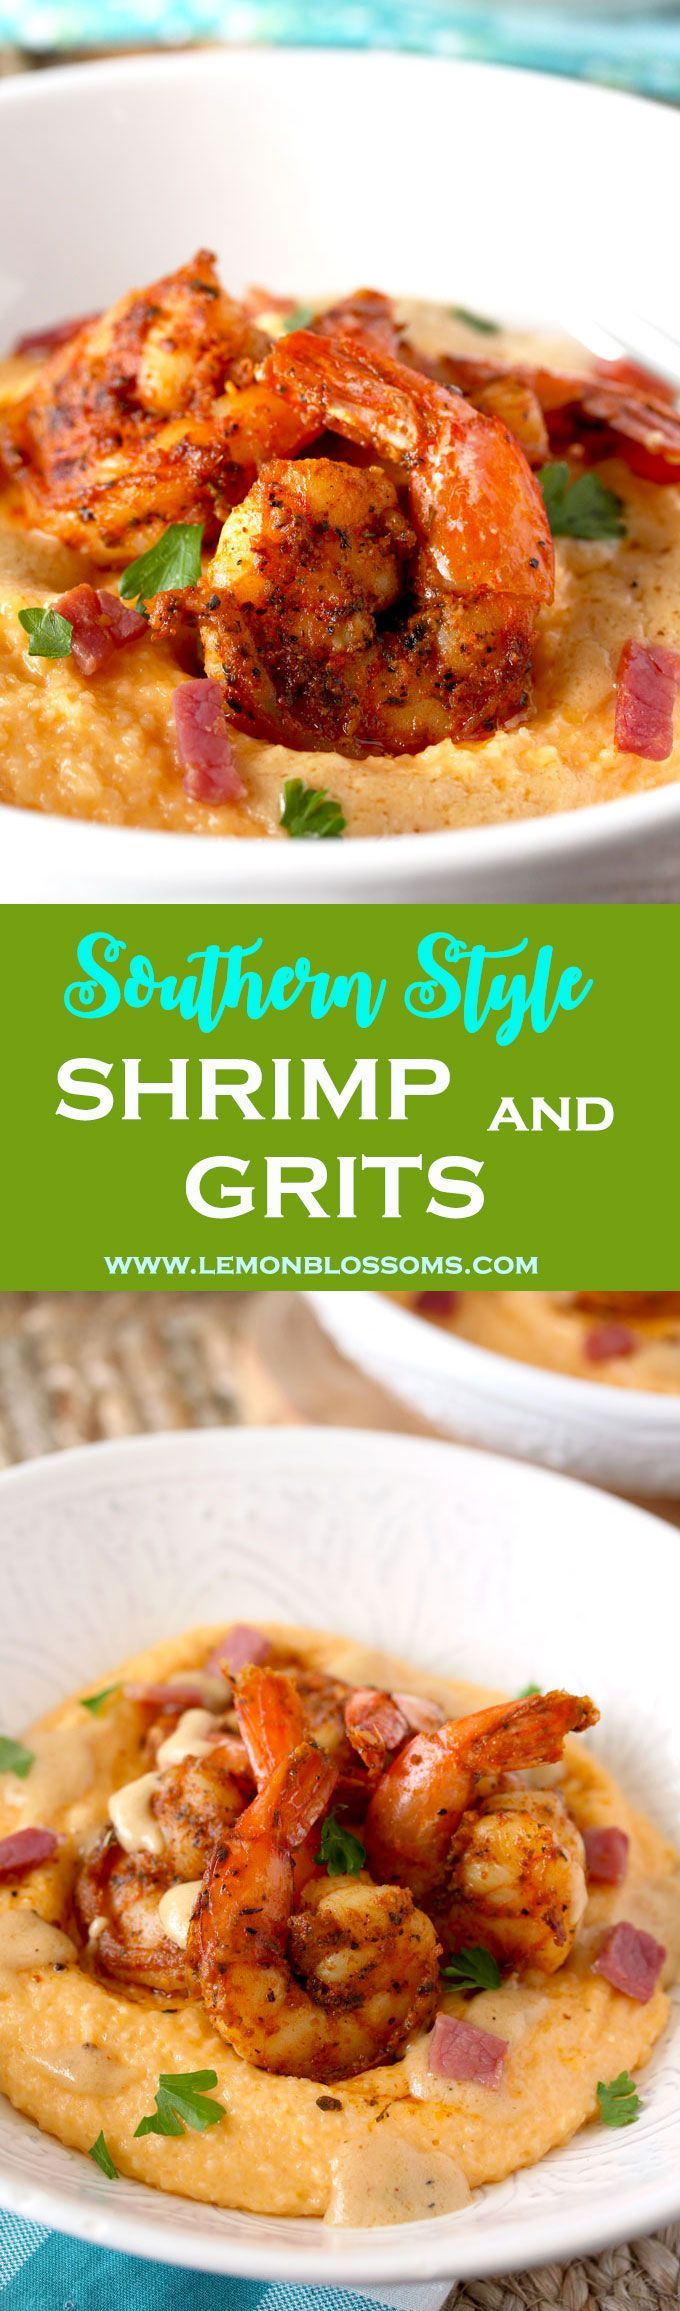 These Shrimp and Grits have the perfect balance of flavors. Bold and Spiced Cajun Shrimp on a bed of creamy and cheesy grits. Finished with a drizzle of the most delicious, rich and buttery sauce. #shrimp #shrimpandgrits #southern #comfortfood #Cajun